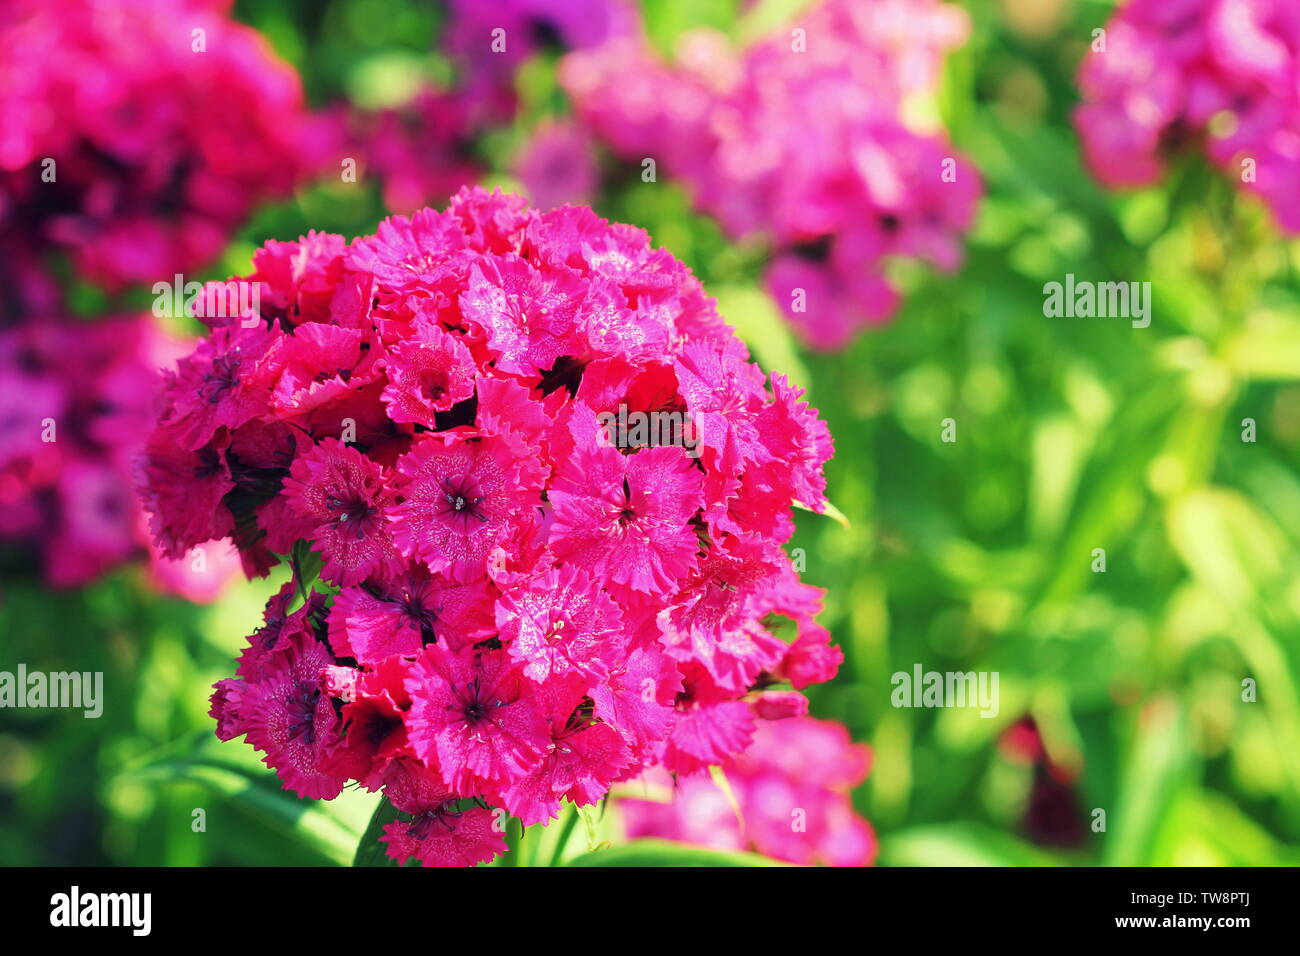 Sweet red william flowers or Dianthus barbatus in the summer garden . - Stock Image